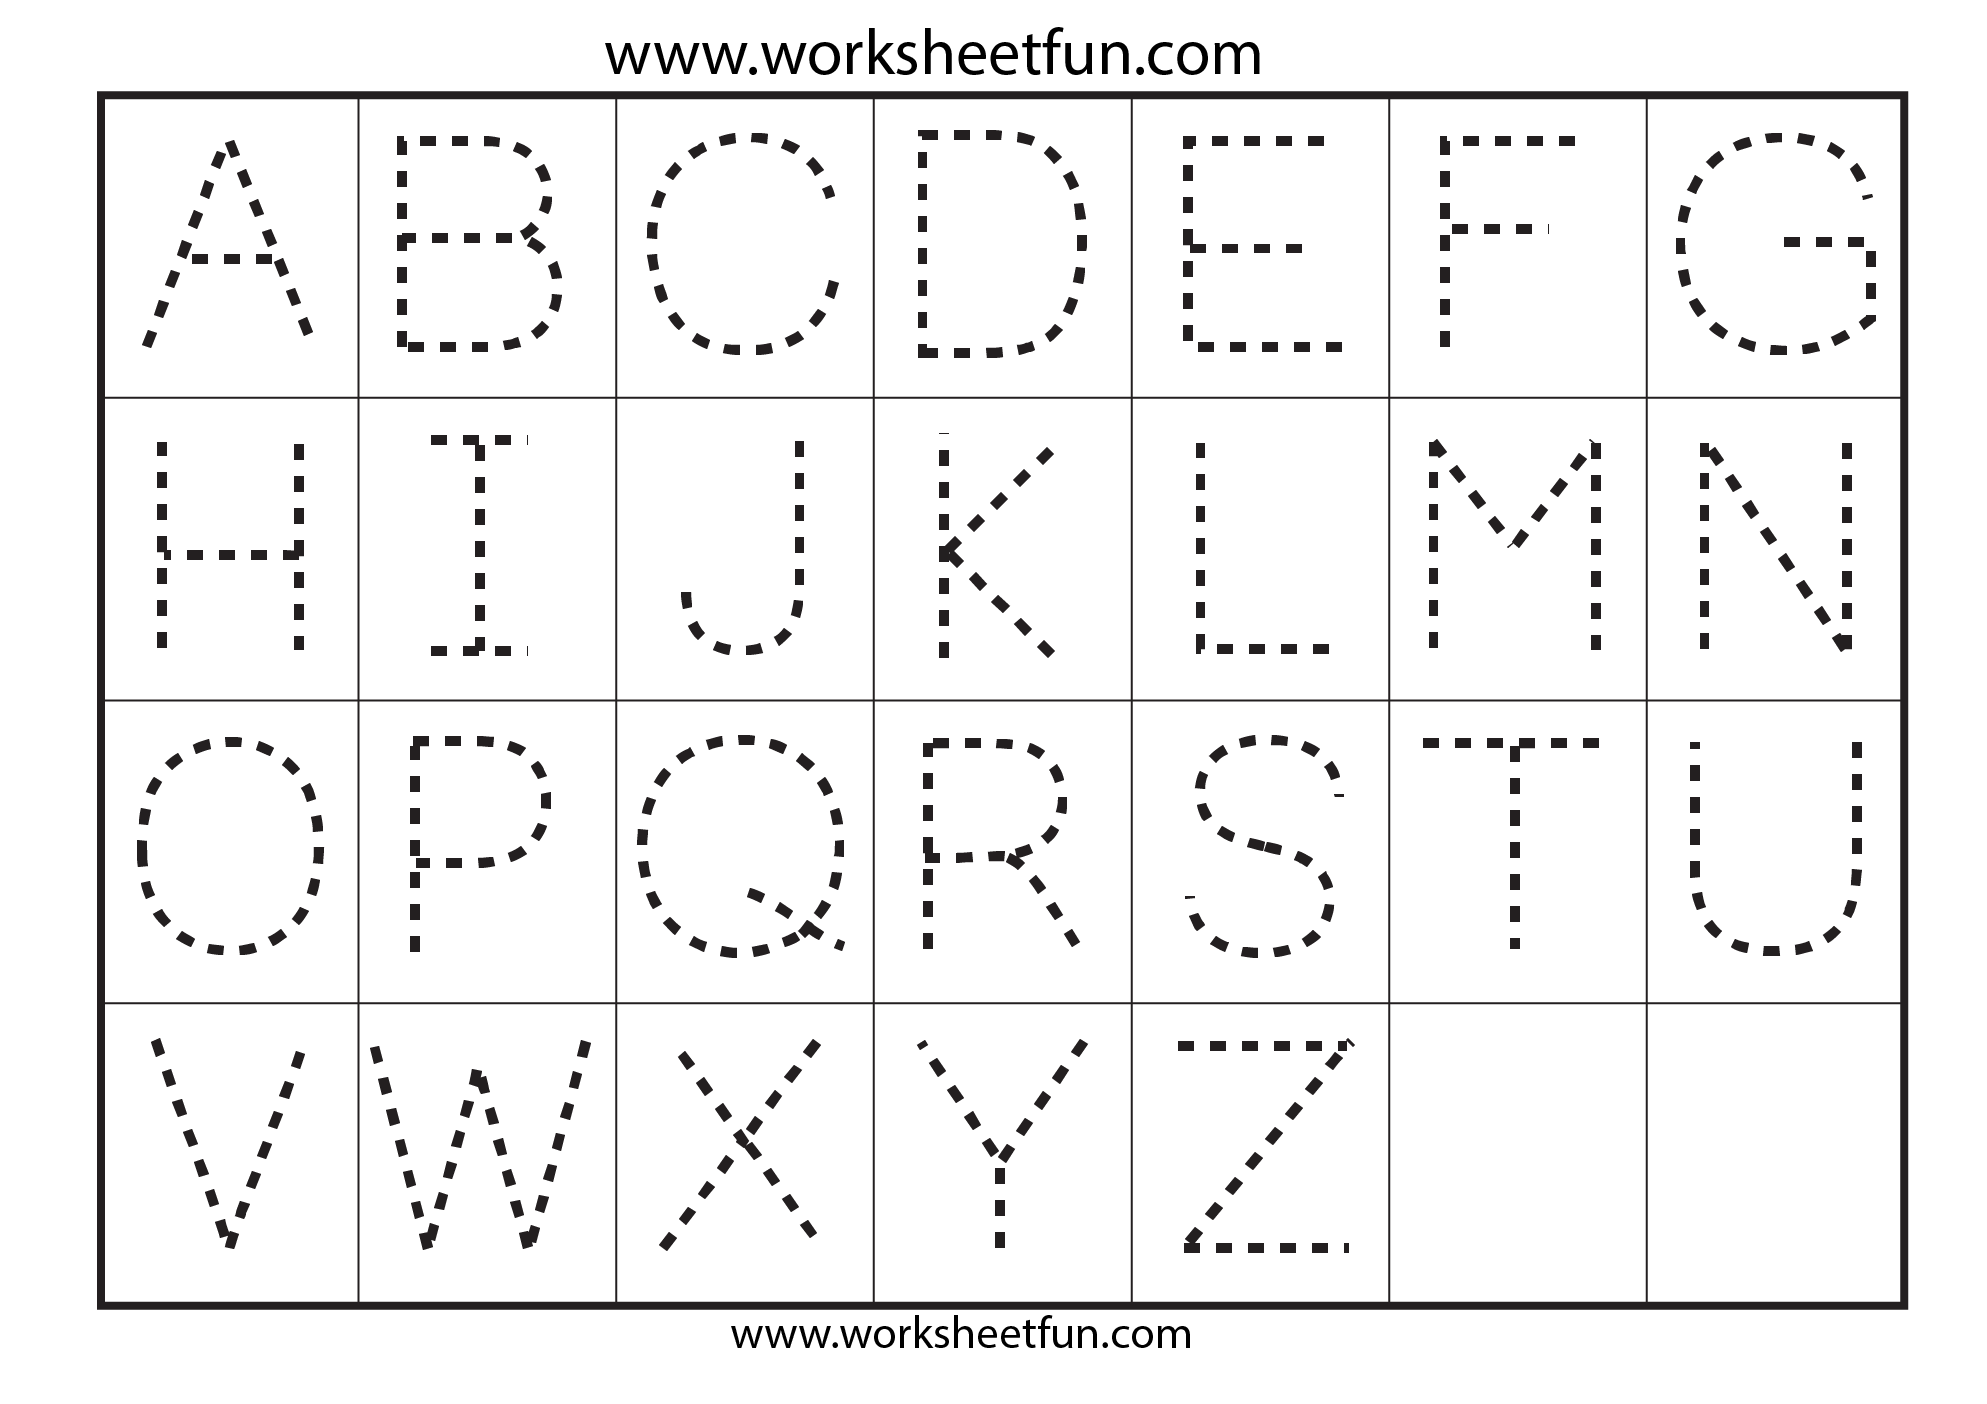 Preschool Worksheets Alphabet Tracing Letter A Art Worksheets Letter C Tracing Worksheet Preschool Worksheets Alphabet Tracing Letter A